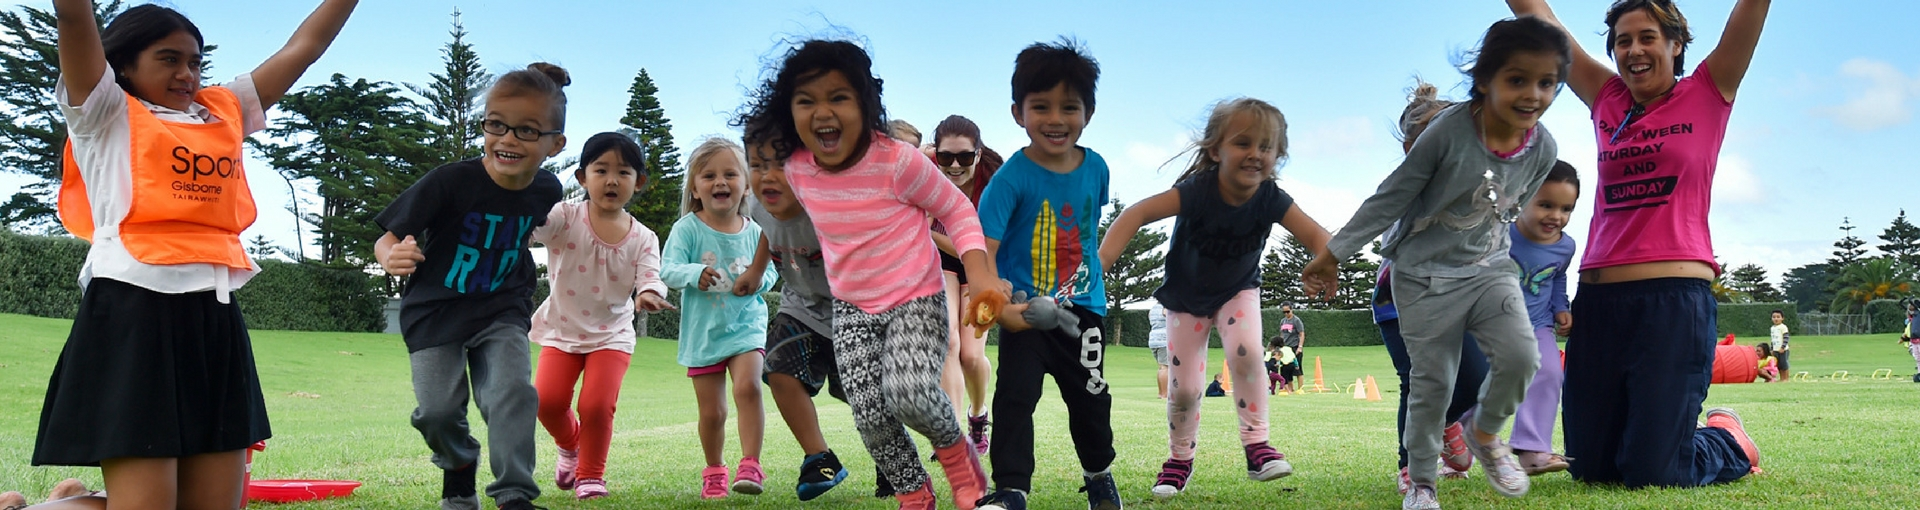 Children from a Gisborne Early Childhood Center playing